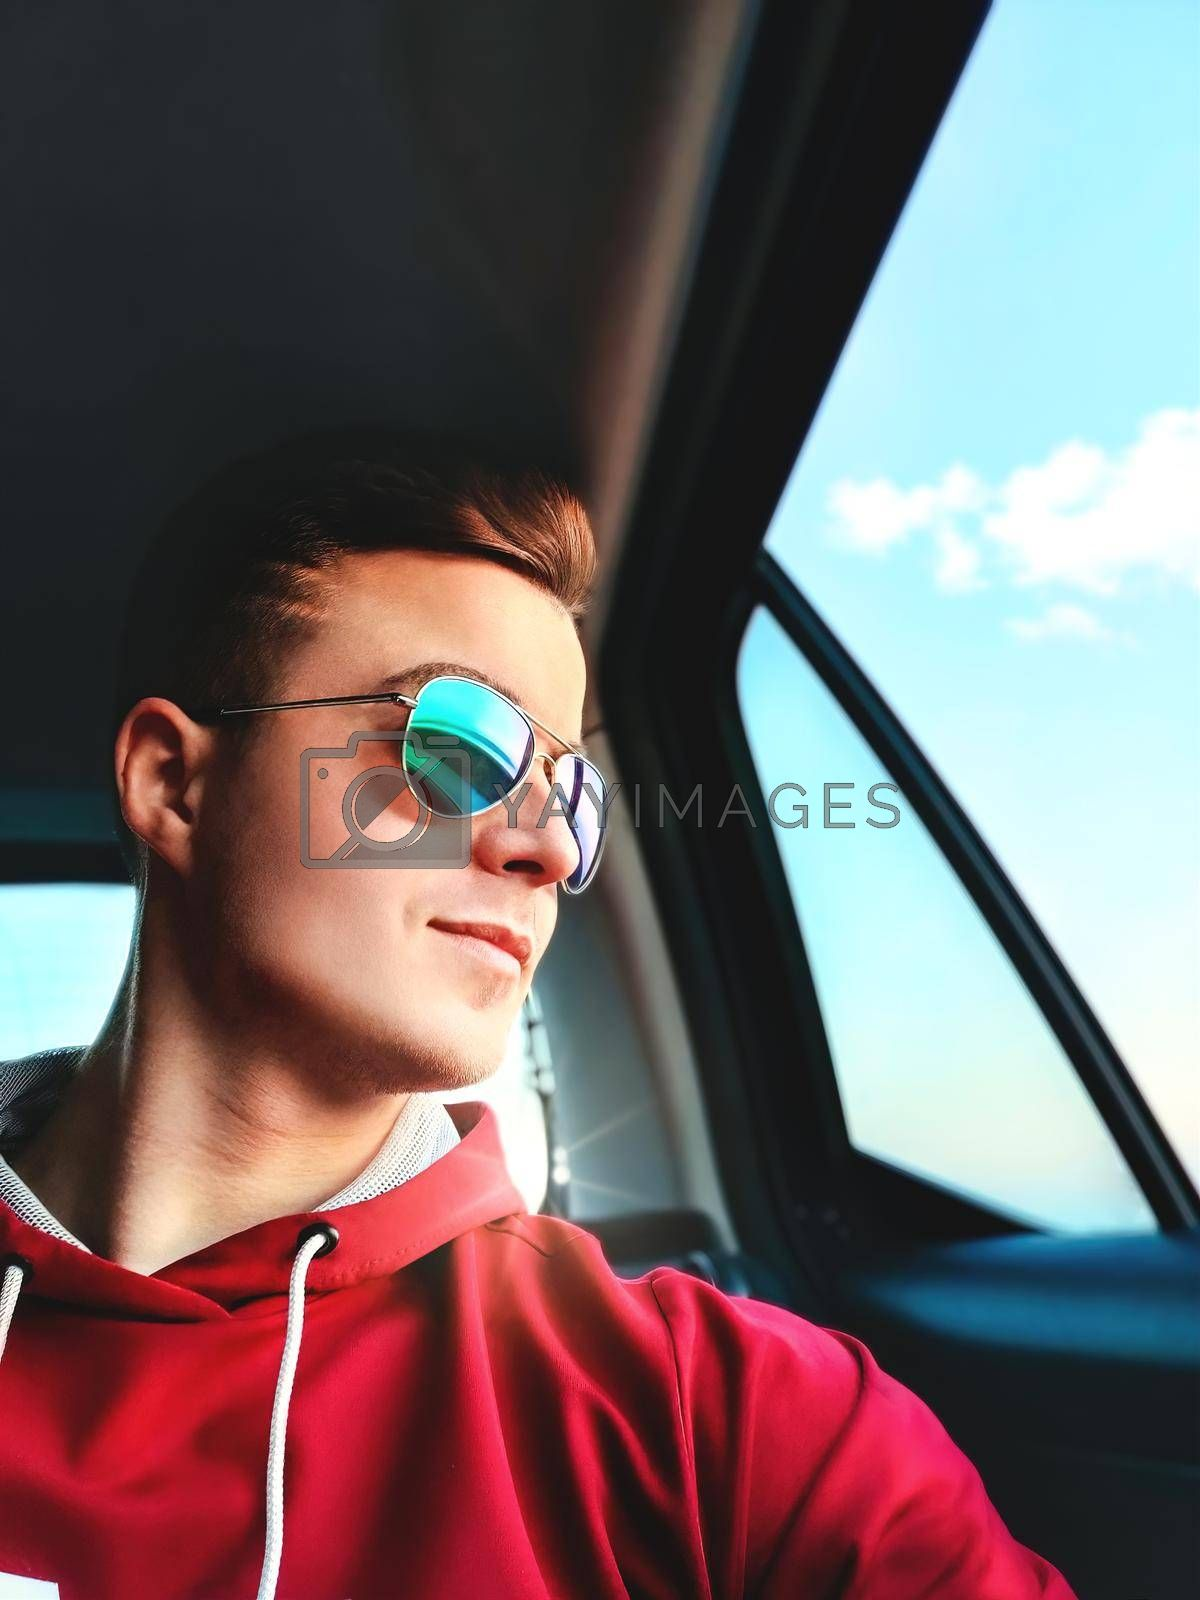 Royalty free image of A young man is sitting in the back seat of a taxi cab going to the airport and taking selfie by Nickstock